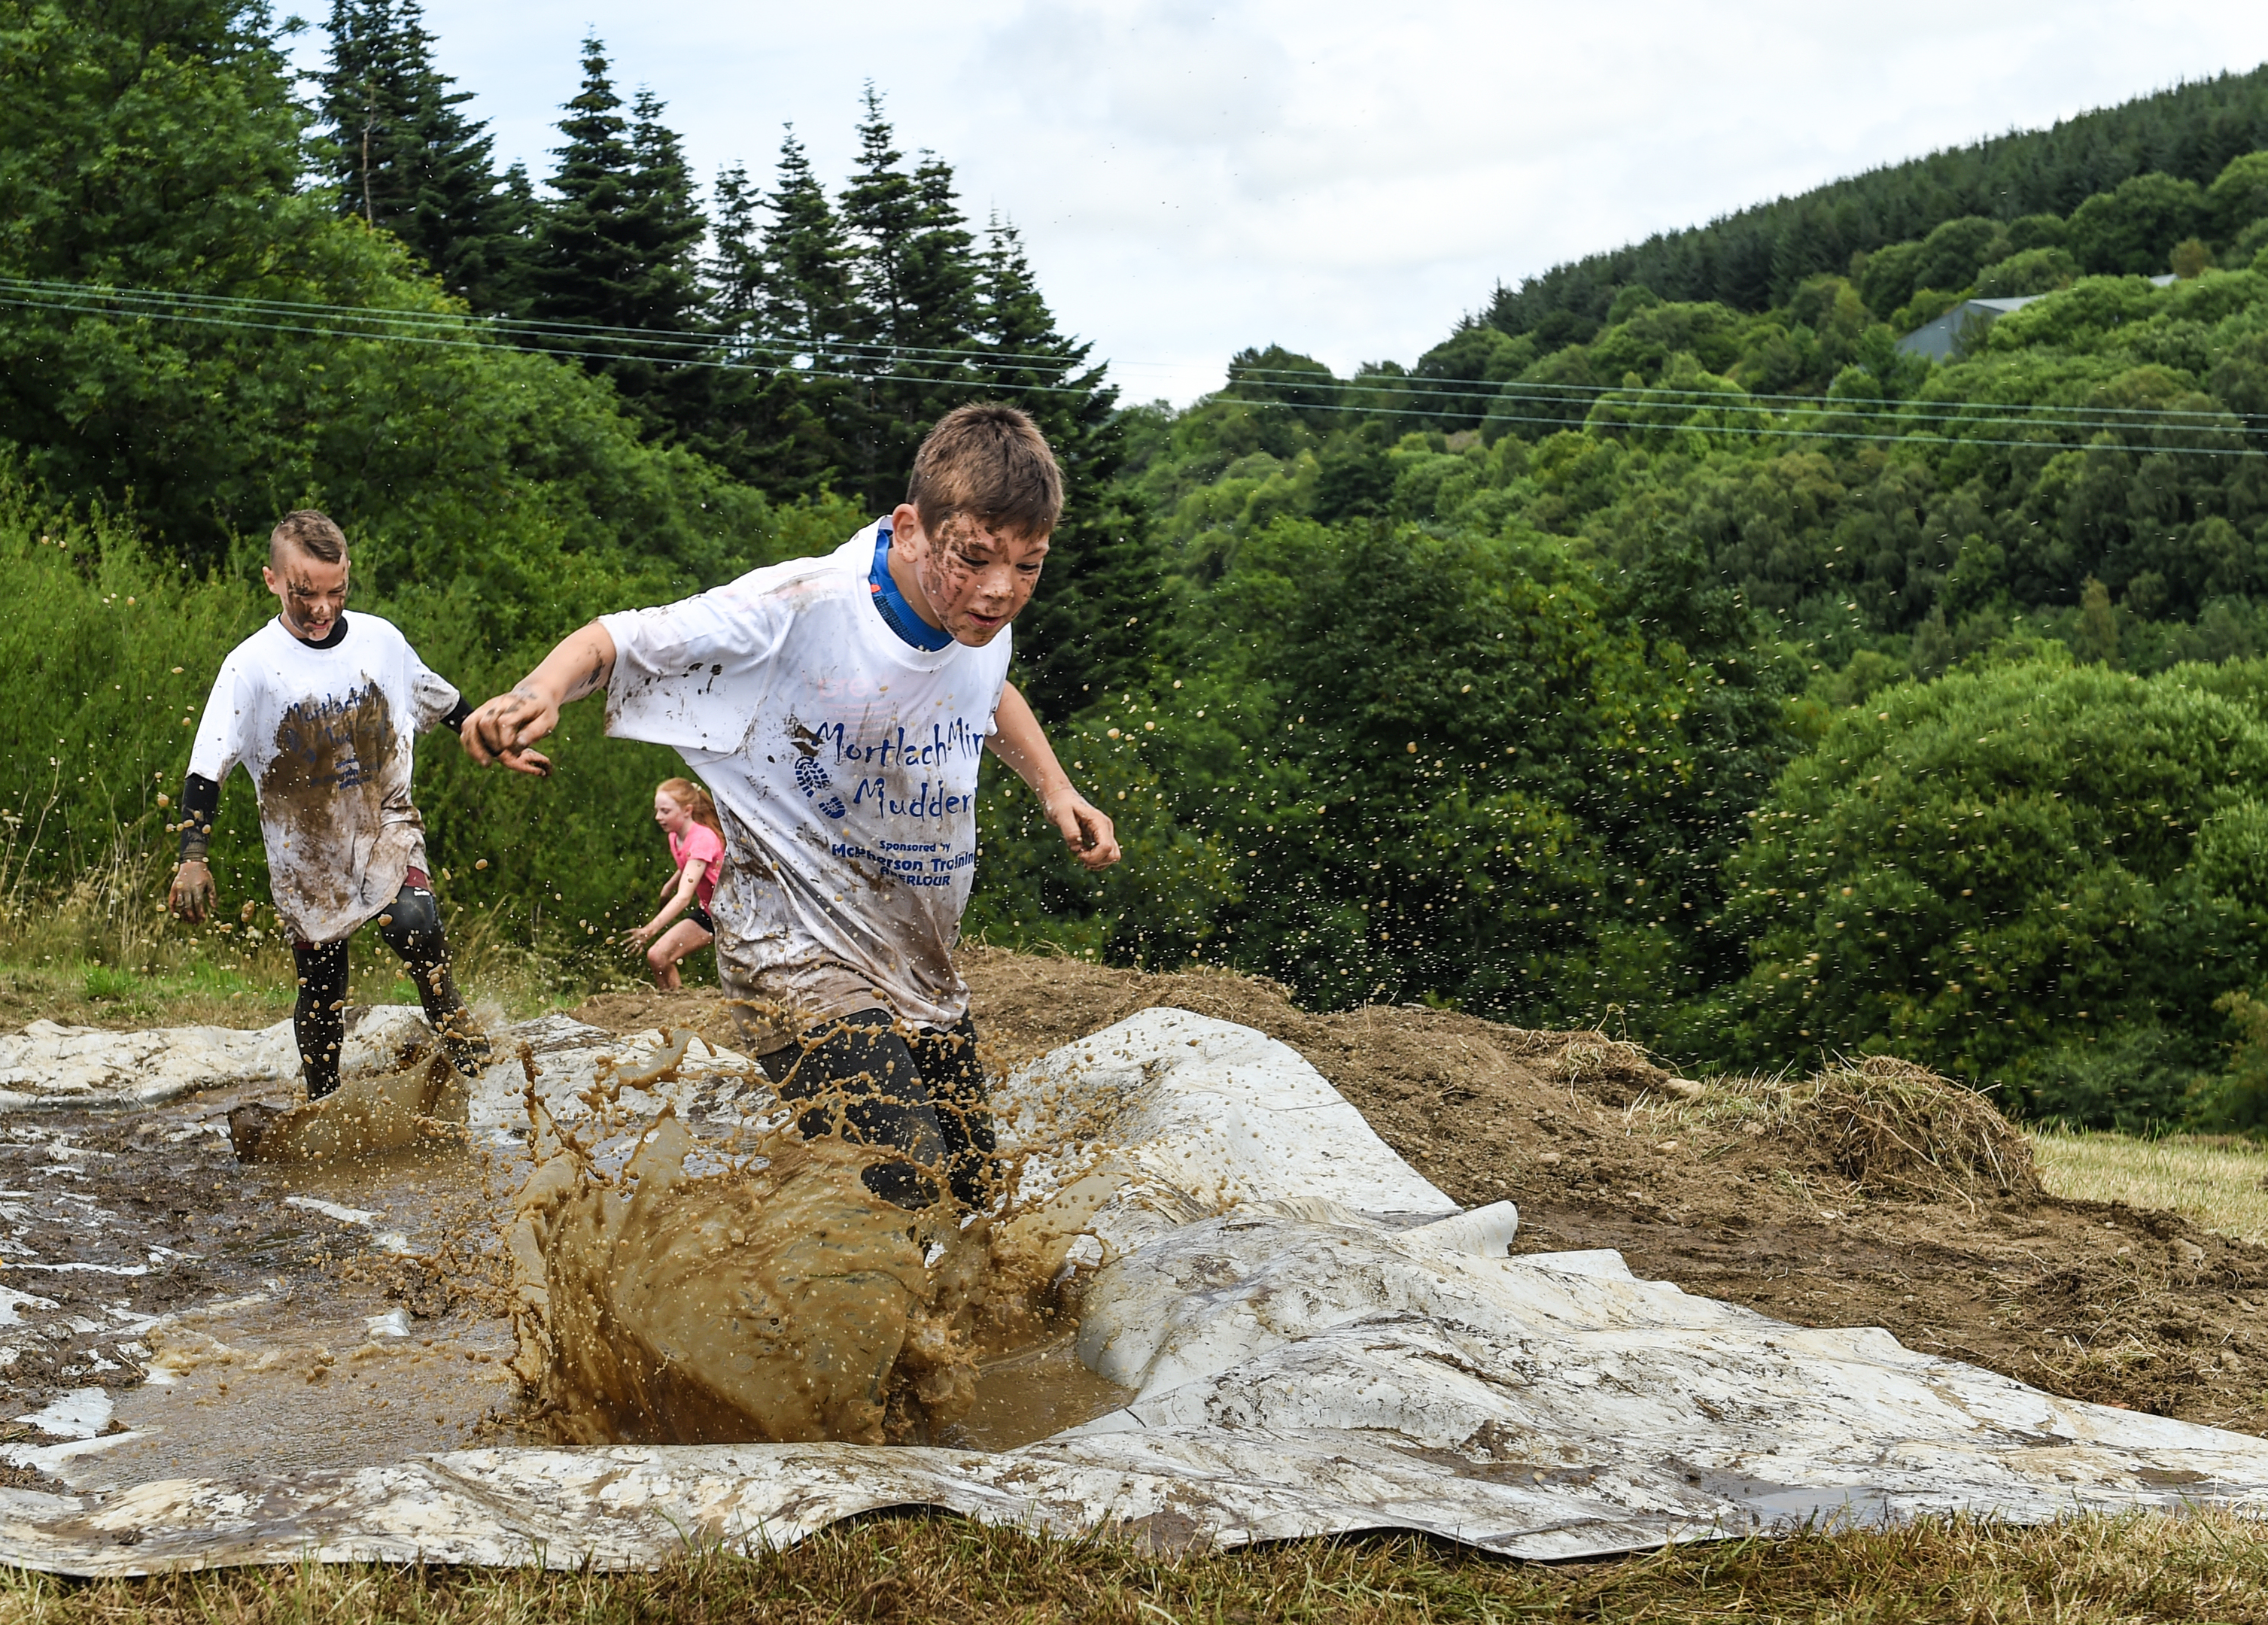 Contestants compete in this years Mortlach Mud Mayhem - 'Mudder' event in Dufftown, Moray. Picture by Jason Hedges.